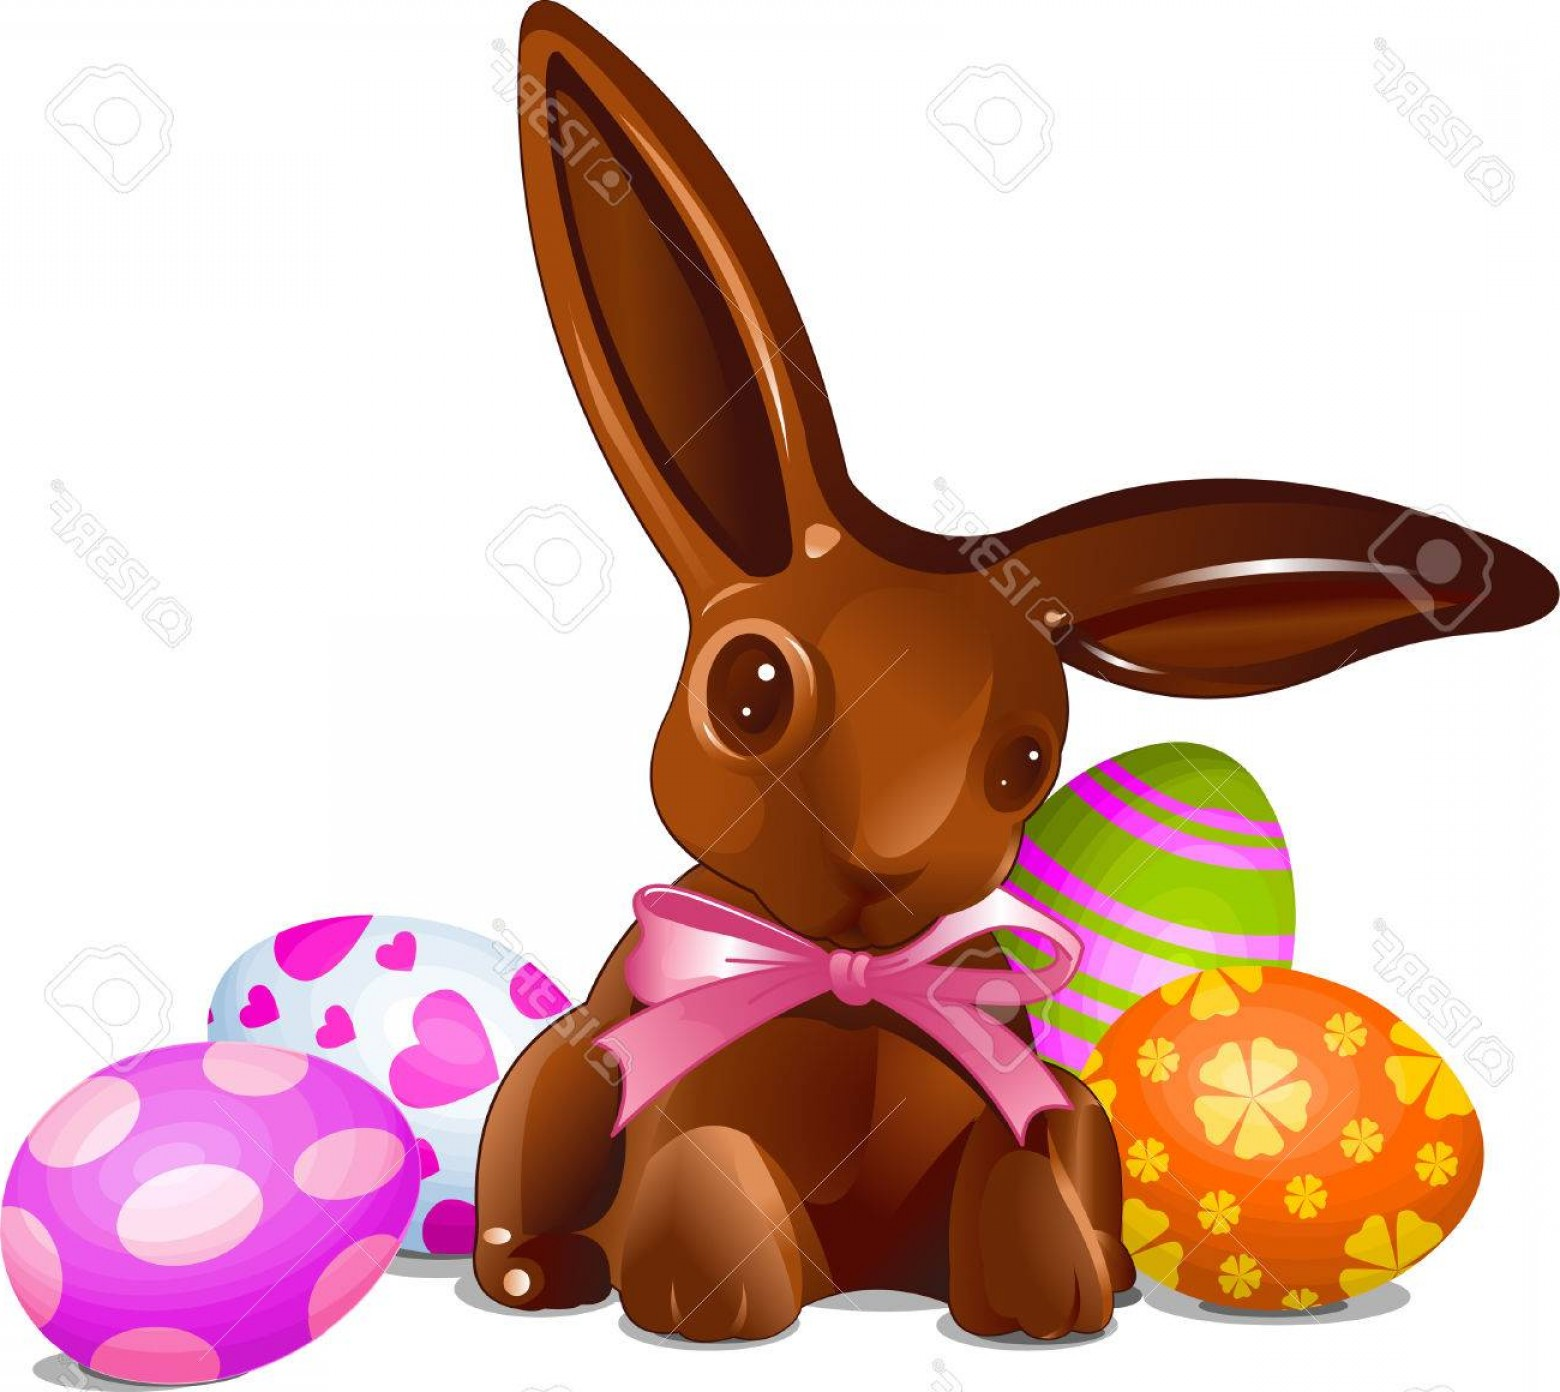 Chocolate Bunny Vector: Photoa Chocolate Easter Bunny With Easter Eggs